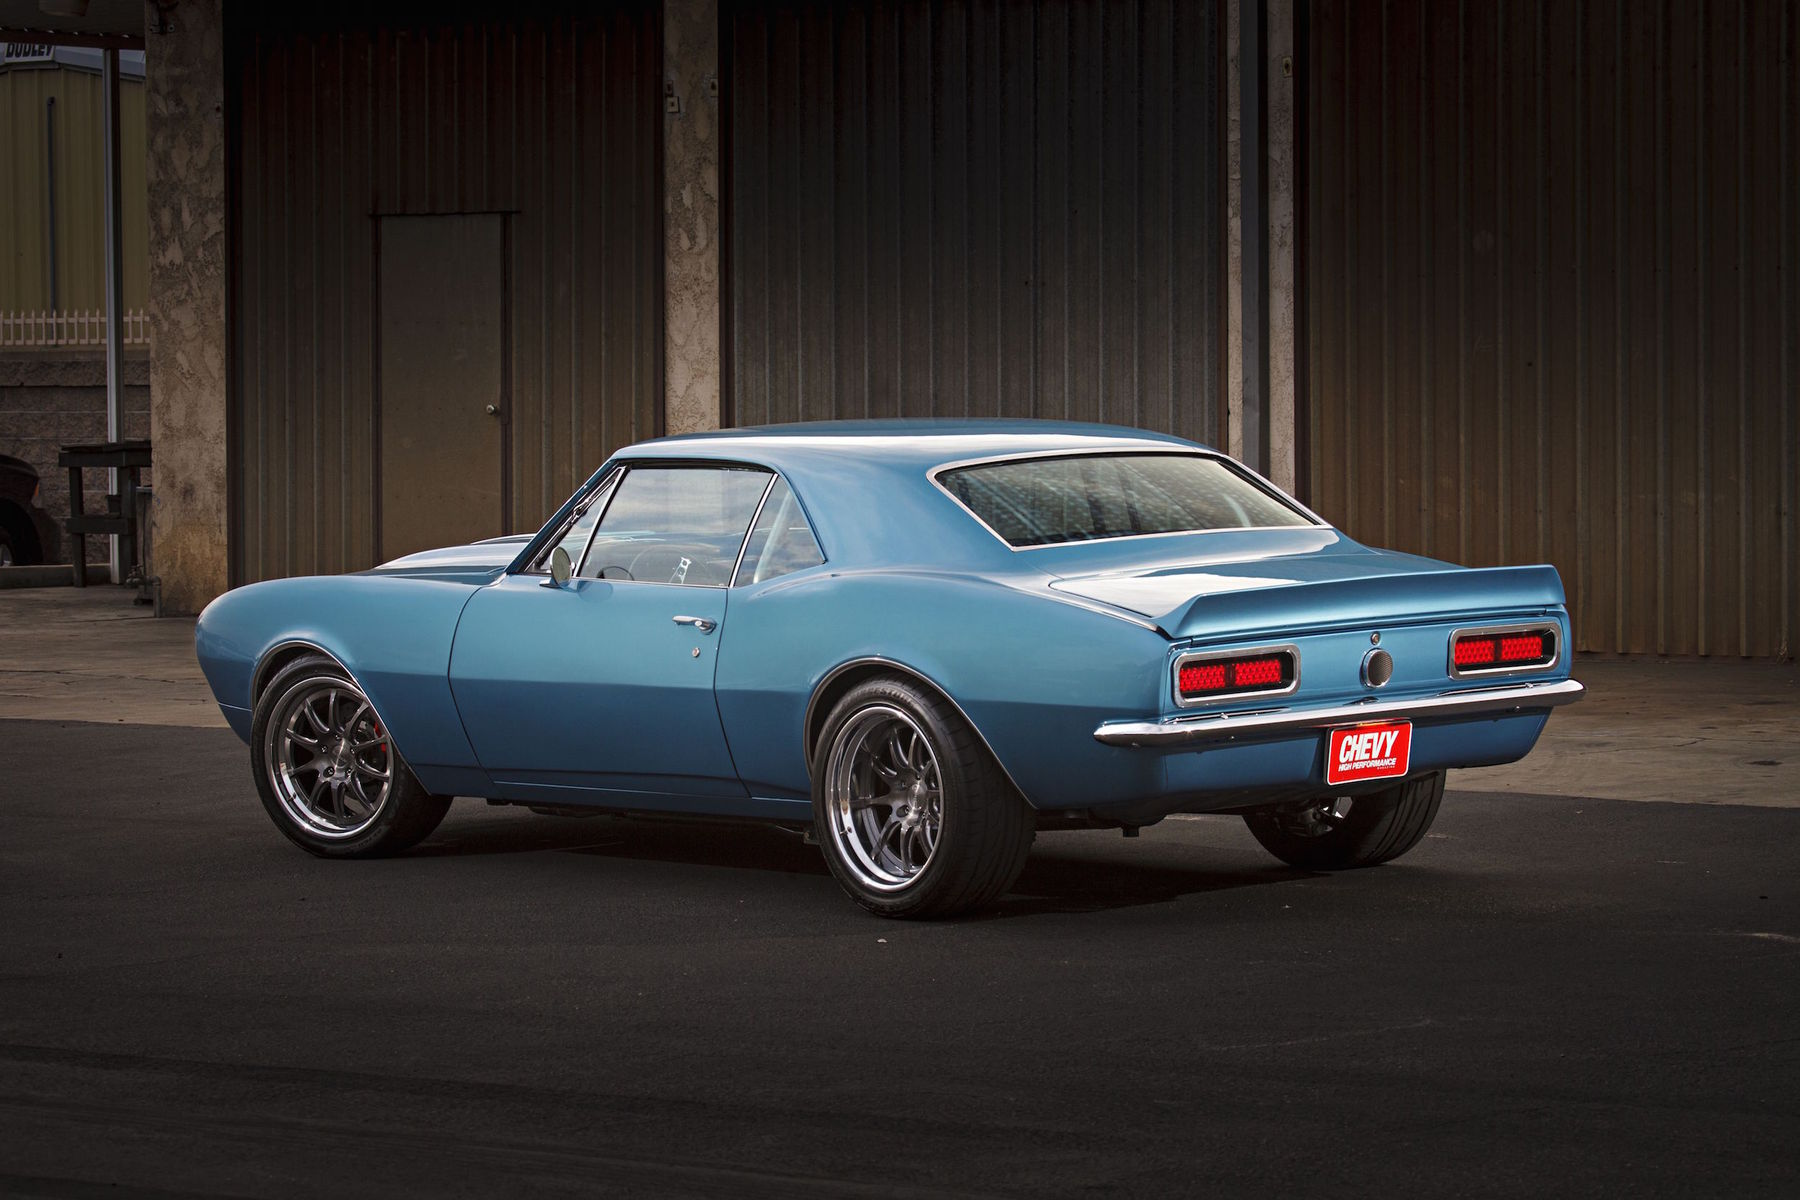 1967 Chevrolet Camaro | Tim Lee's Pro-Touring 1967 Camaro RS on Forgeline GZ3 Wheels